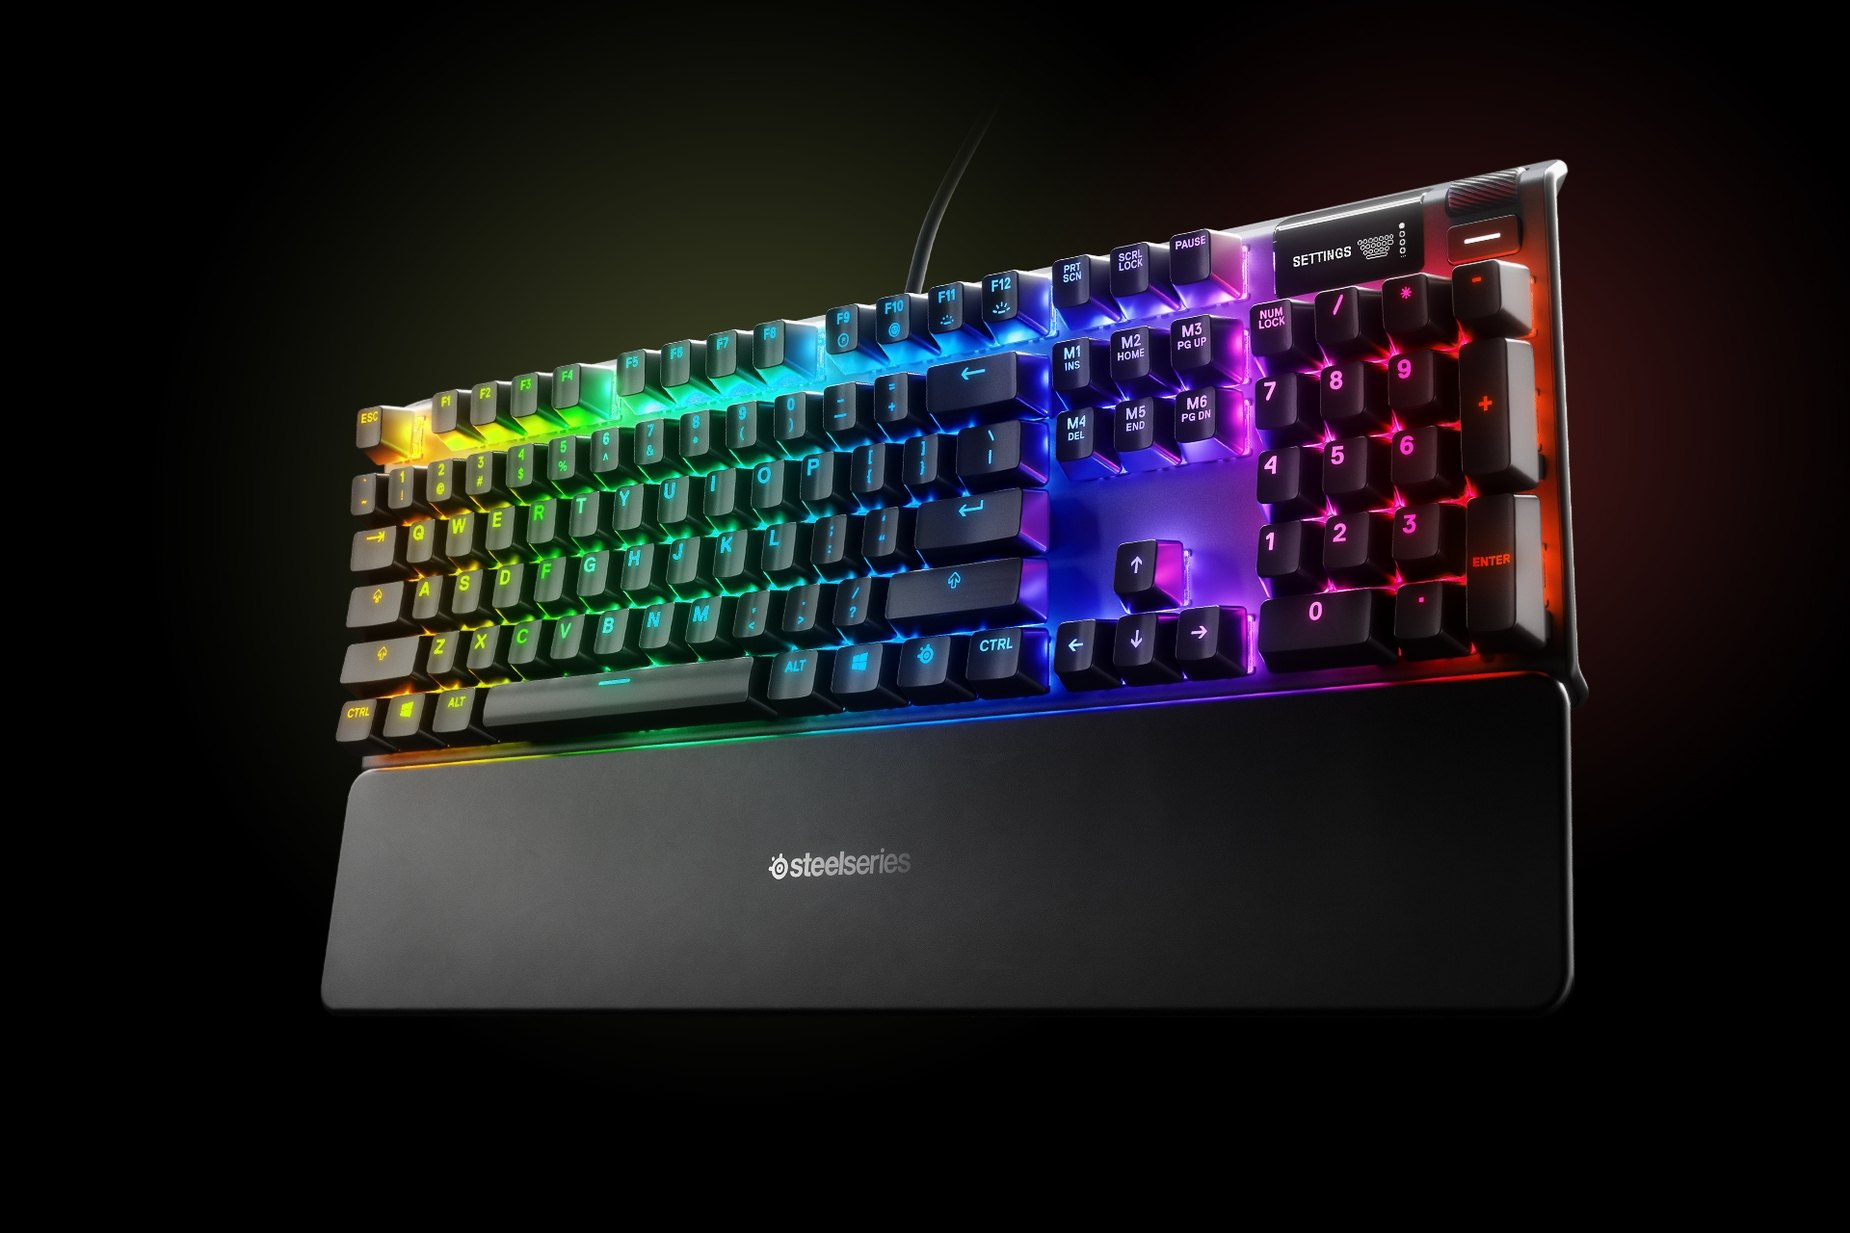 法语-Apex 7 (Red Switch) gaming keyboard with the illumination lit up on dark background, also shows the OLED screen and controls used to change settings and adjust audio